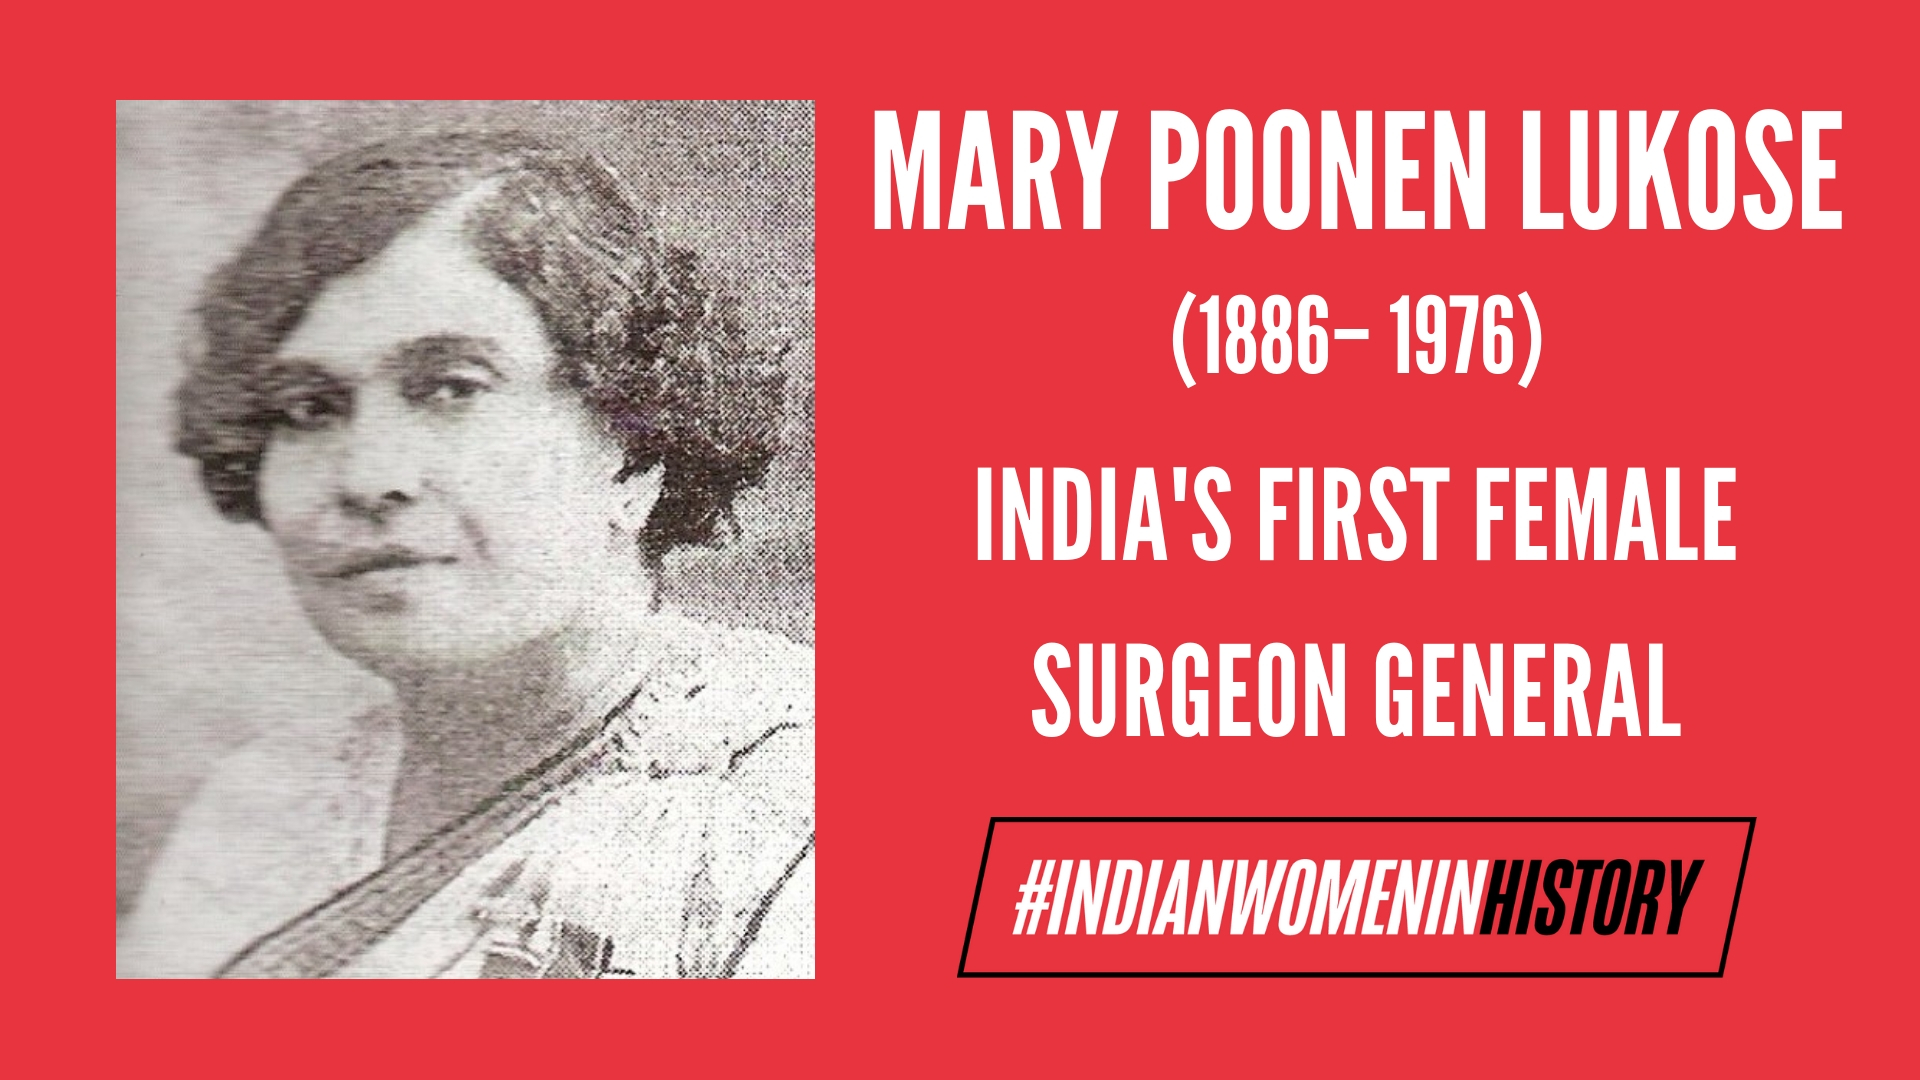 Mary Poonen Lukose: A Physician And Pioneering Figure   #IndianWomenInHistory